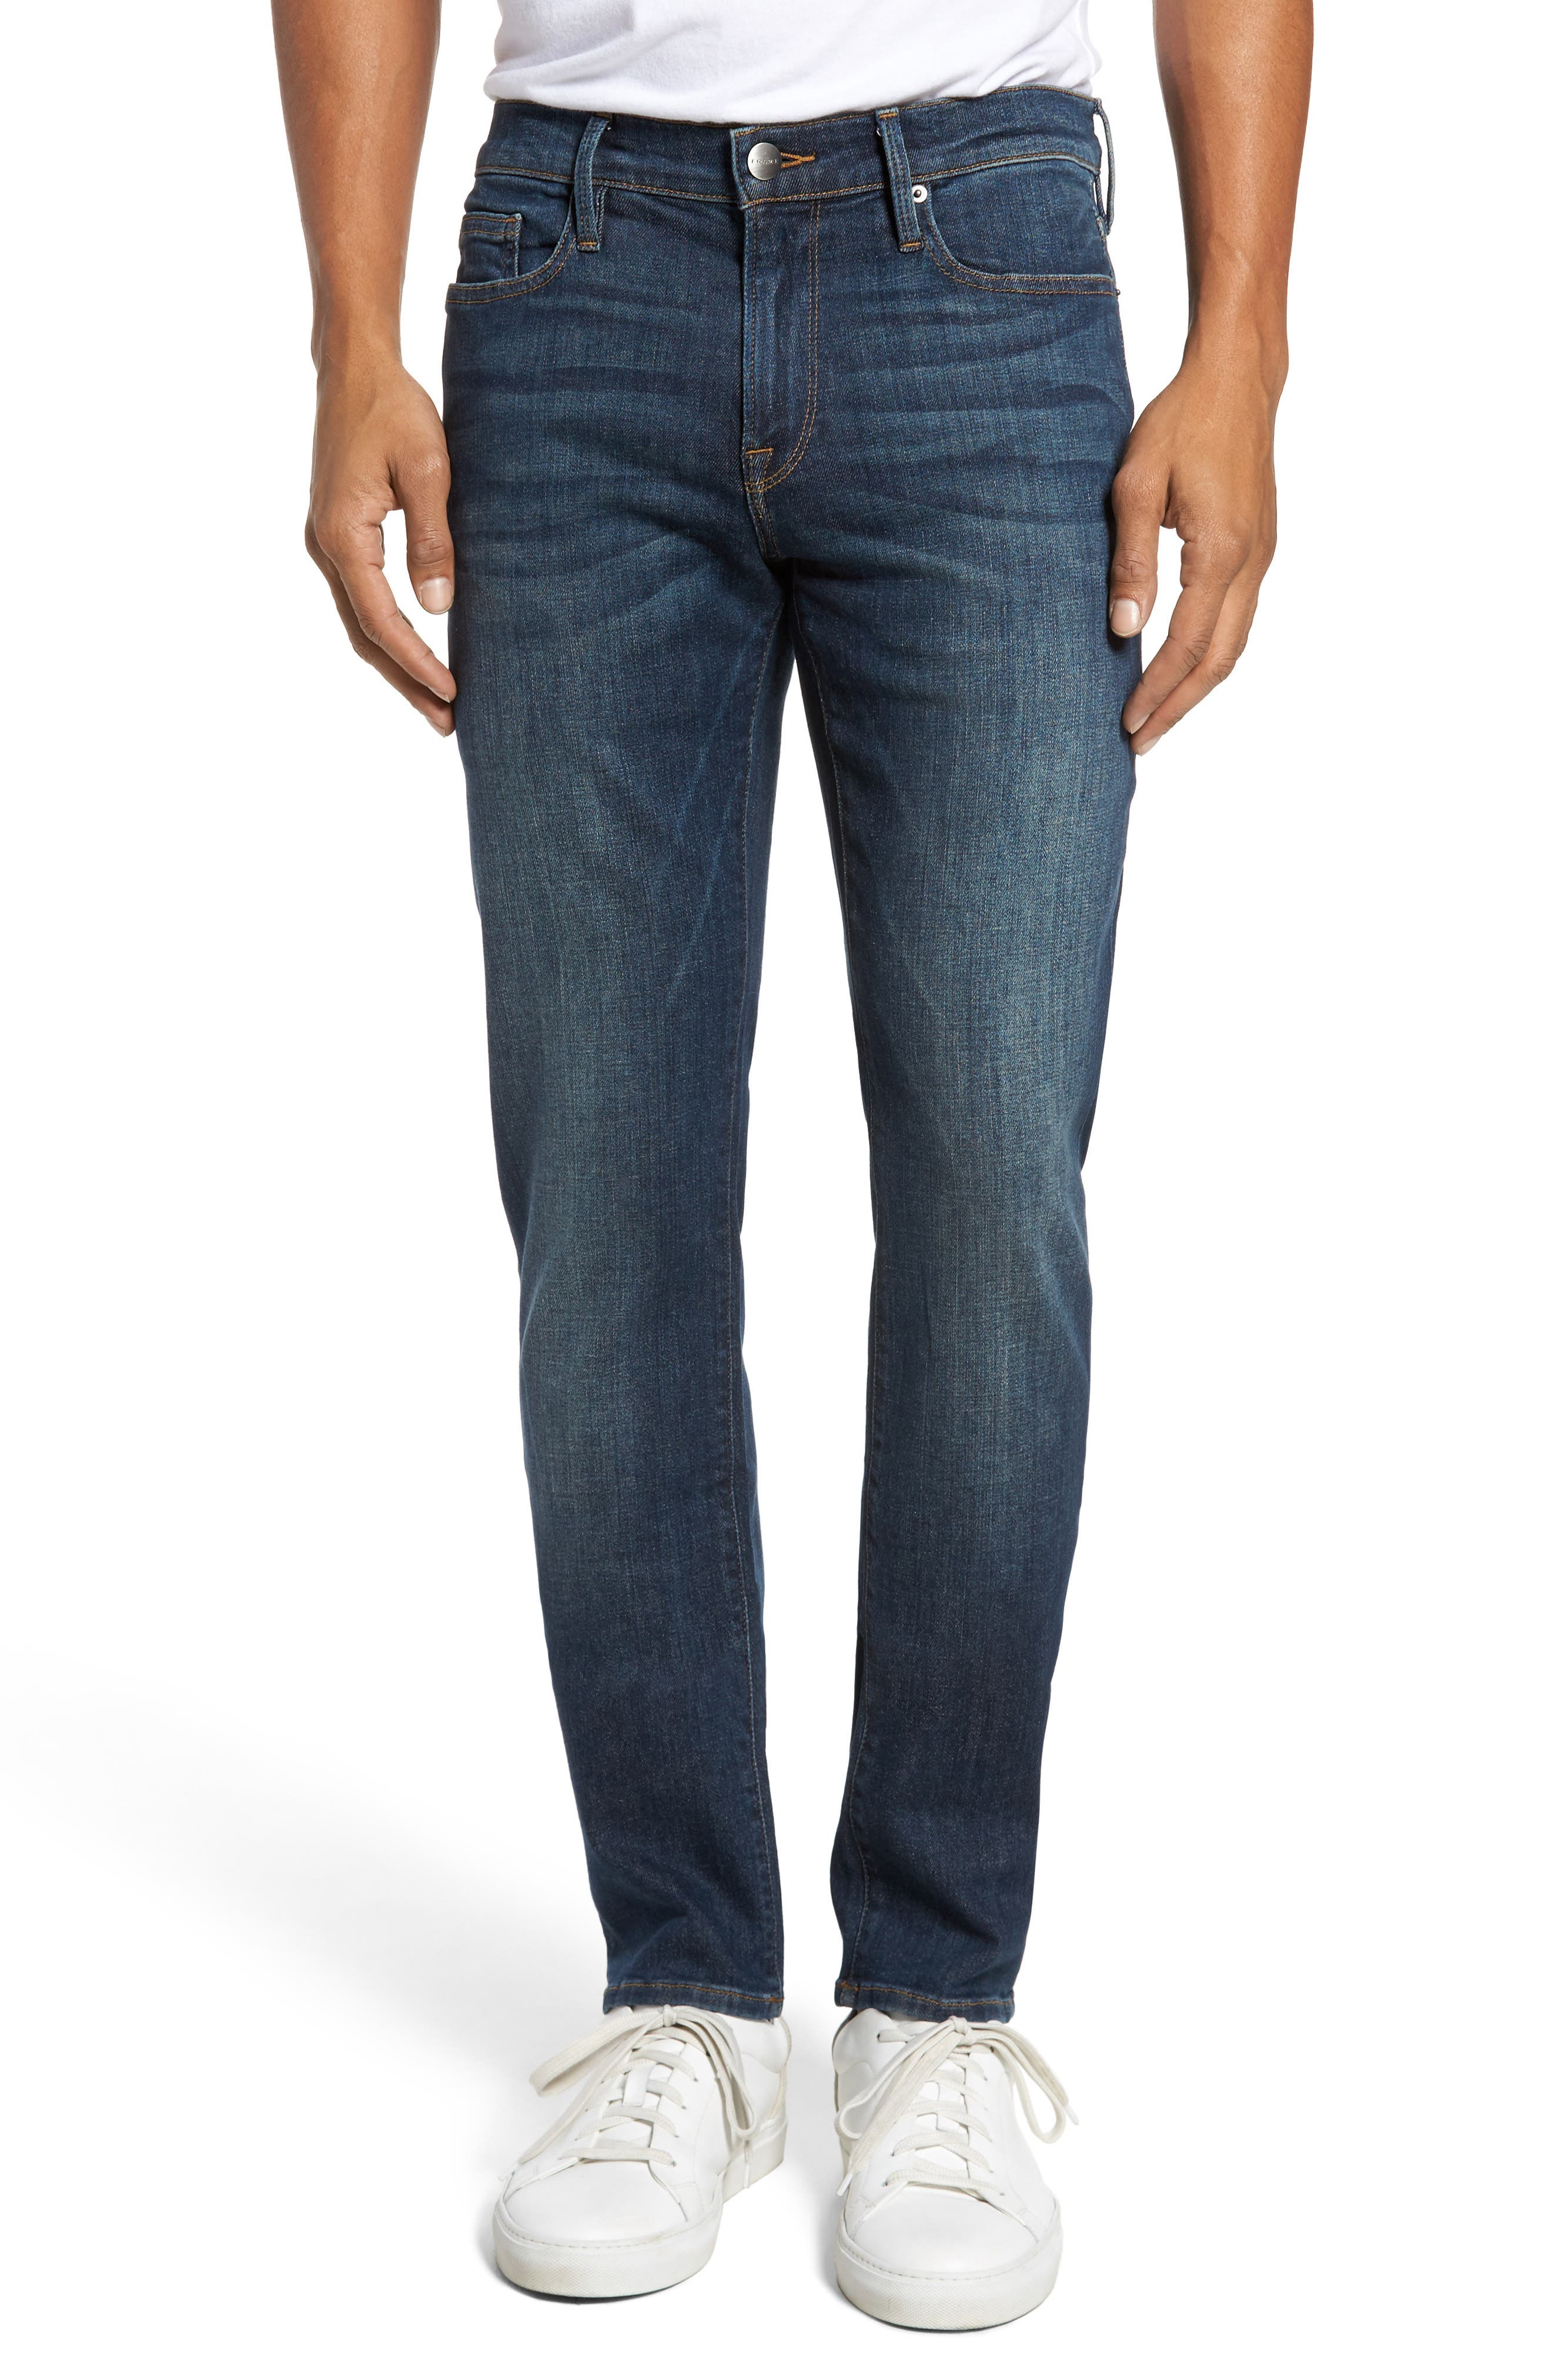 Alternate Image 1 Selected - FRAME L'Homme Slim Fit Jeans (Midway Park)